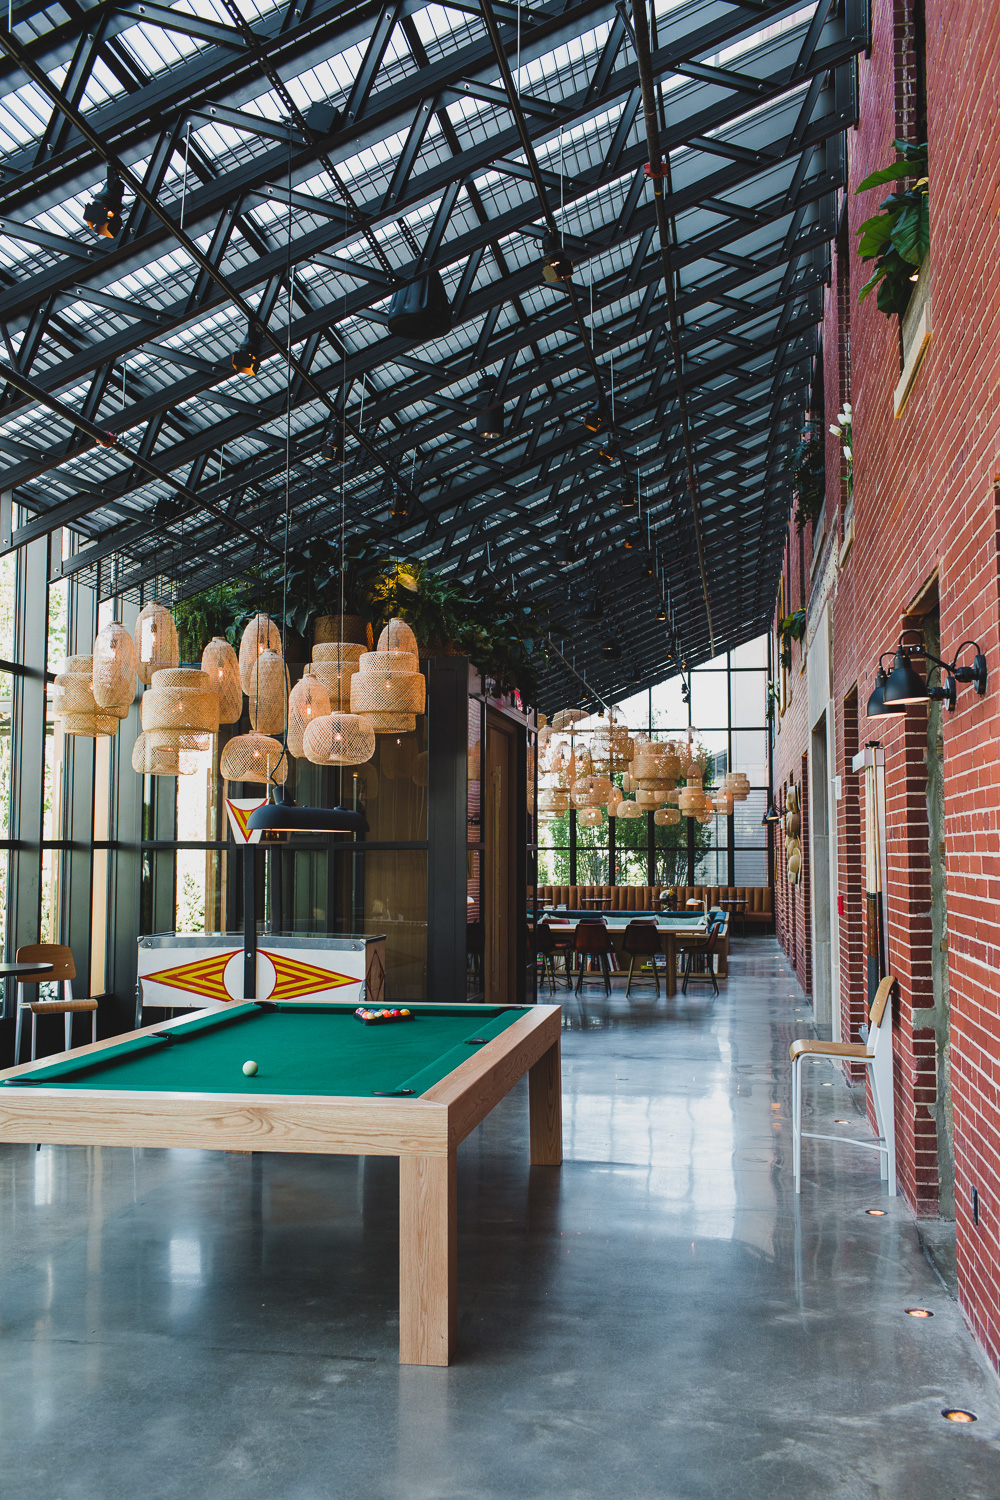 The Asbury Hotel lobby with pool table | blog.cassiecastellaw.com